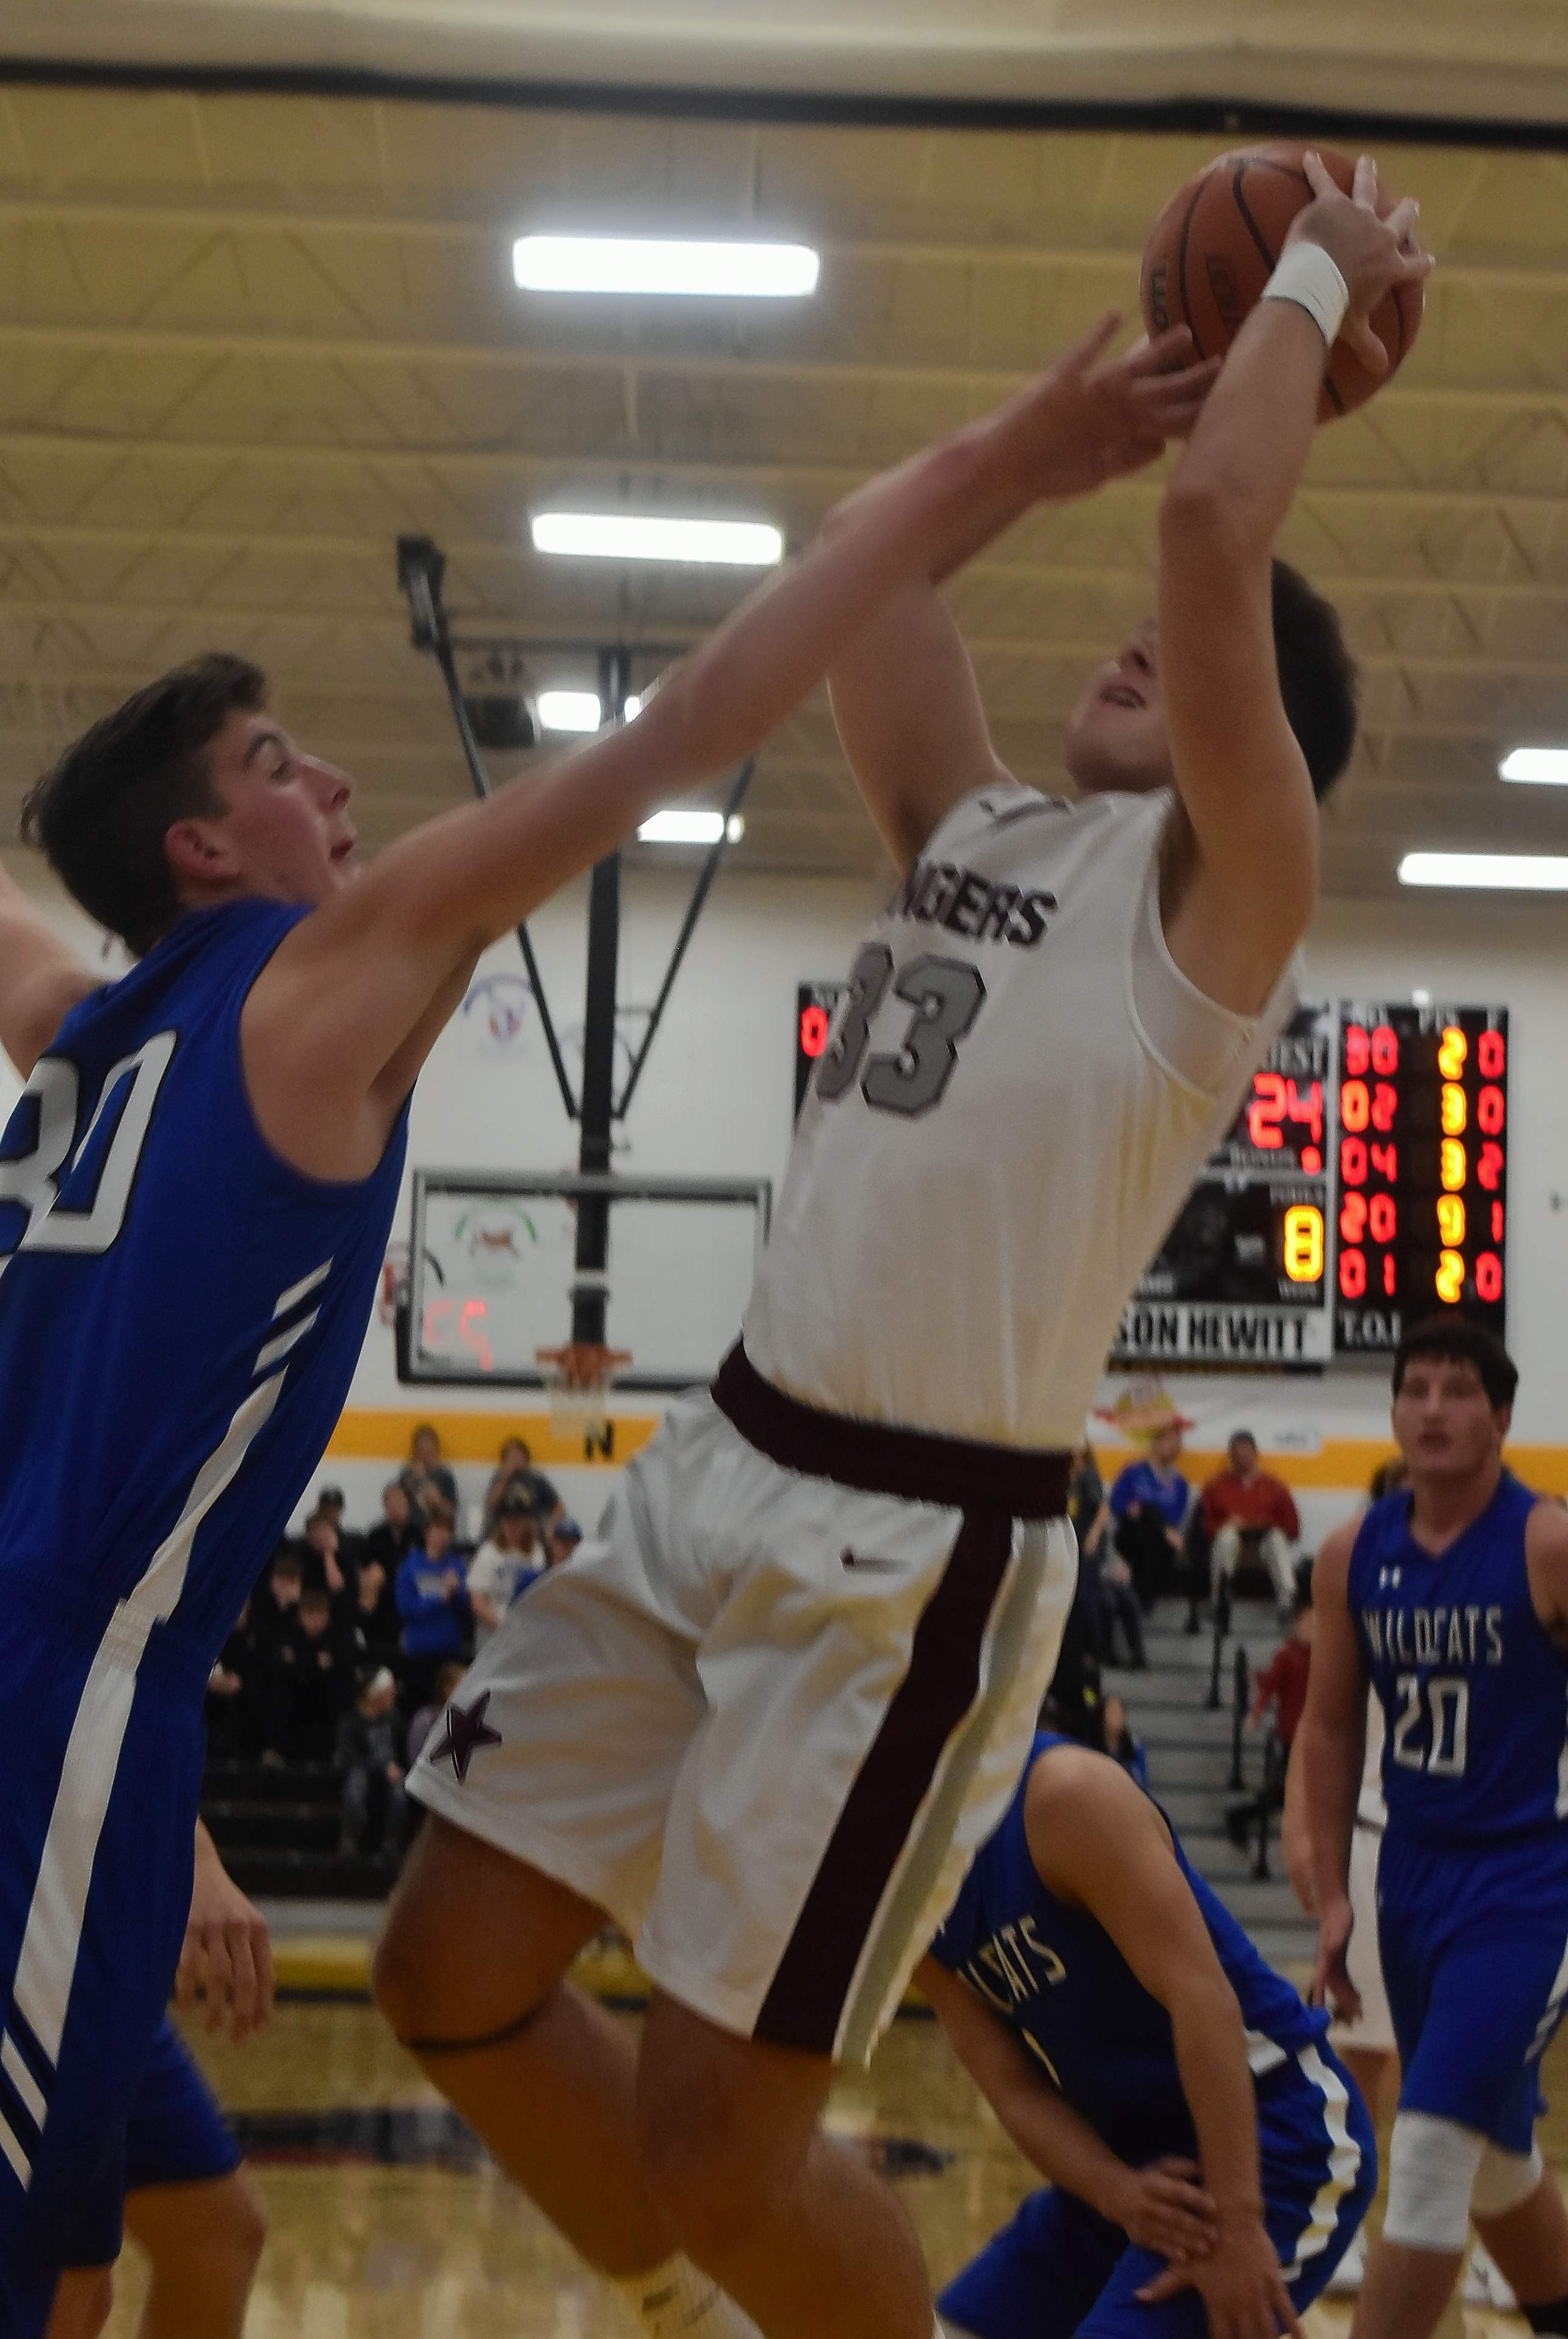 Benton's Parker Williams goes up for two of his 19 points in the Rangers' opening game of the season Monday at the Goreville Invitational Tournament. The Rangers lost a 67-65 overtime thriller to Anna-Jonesboro.